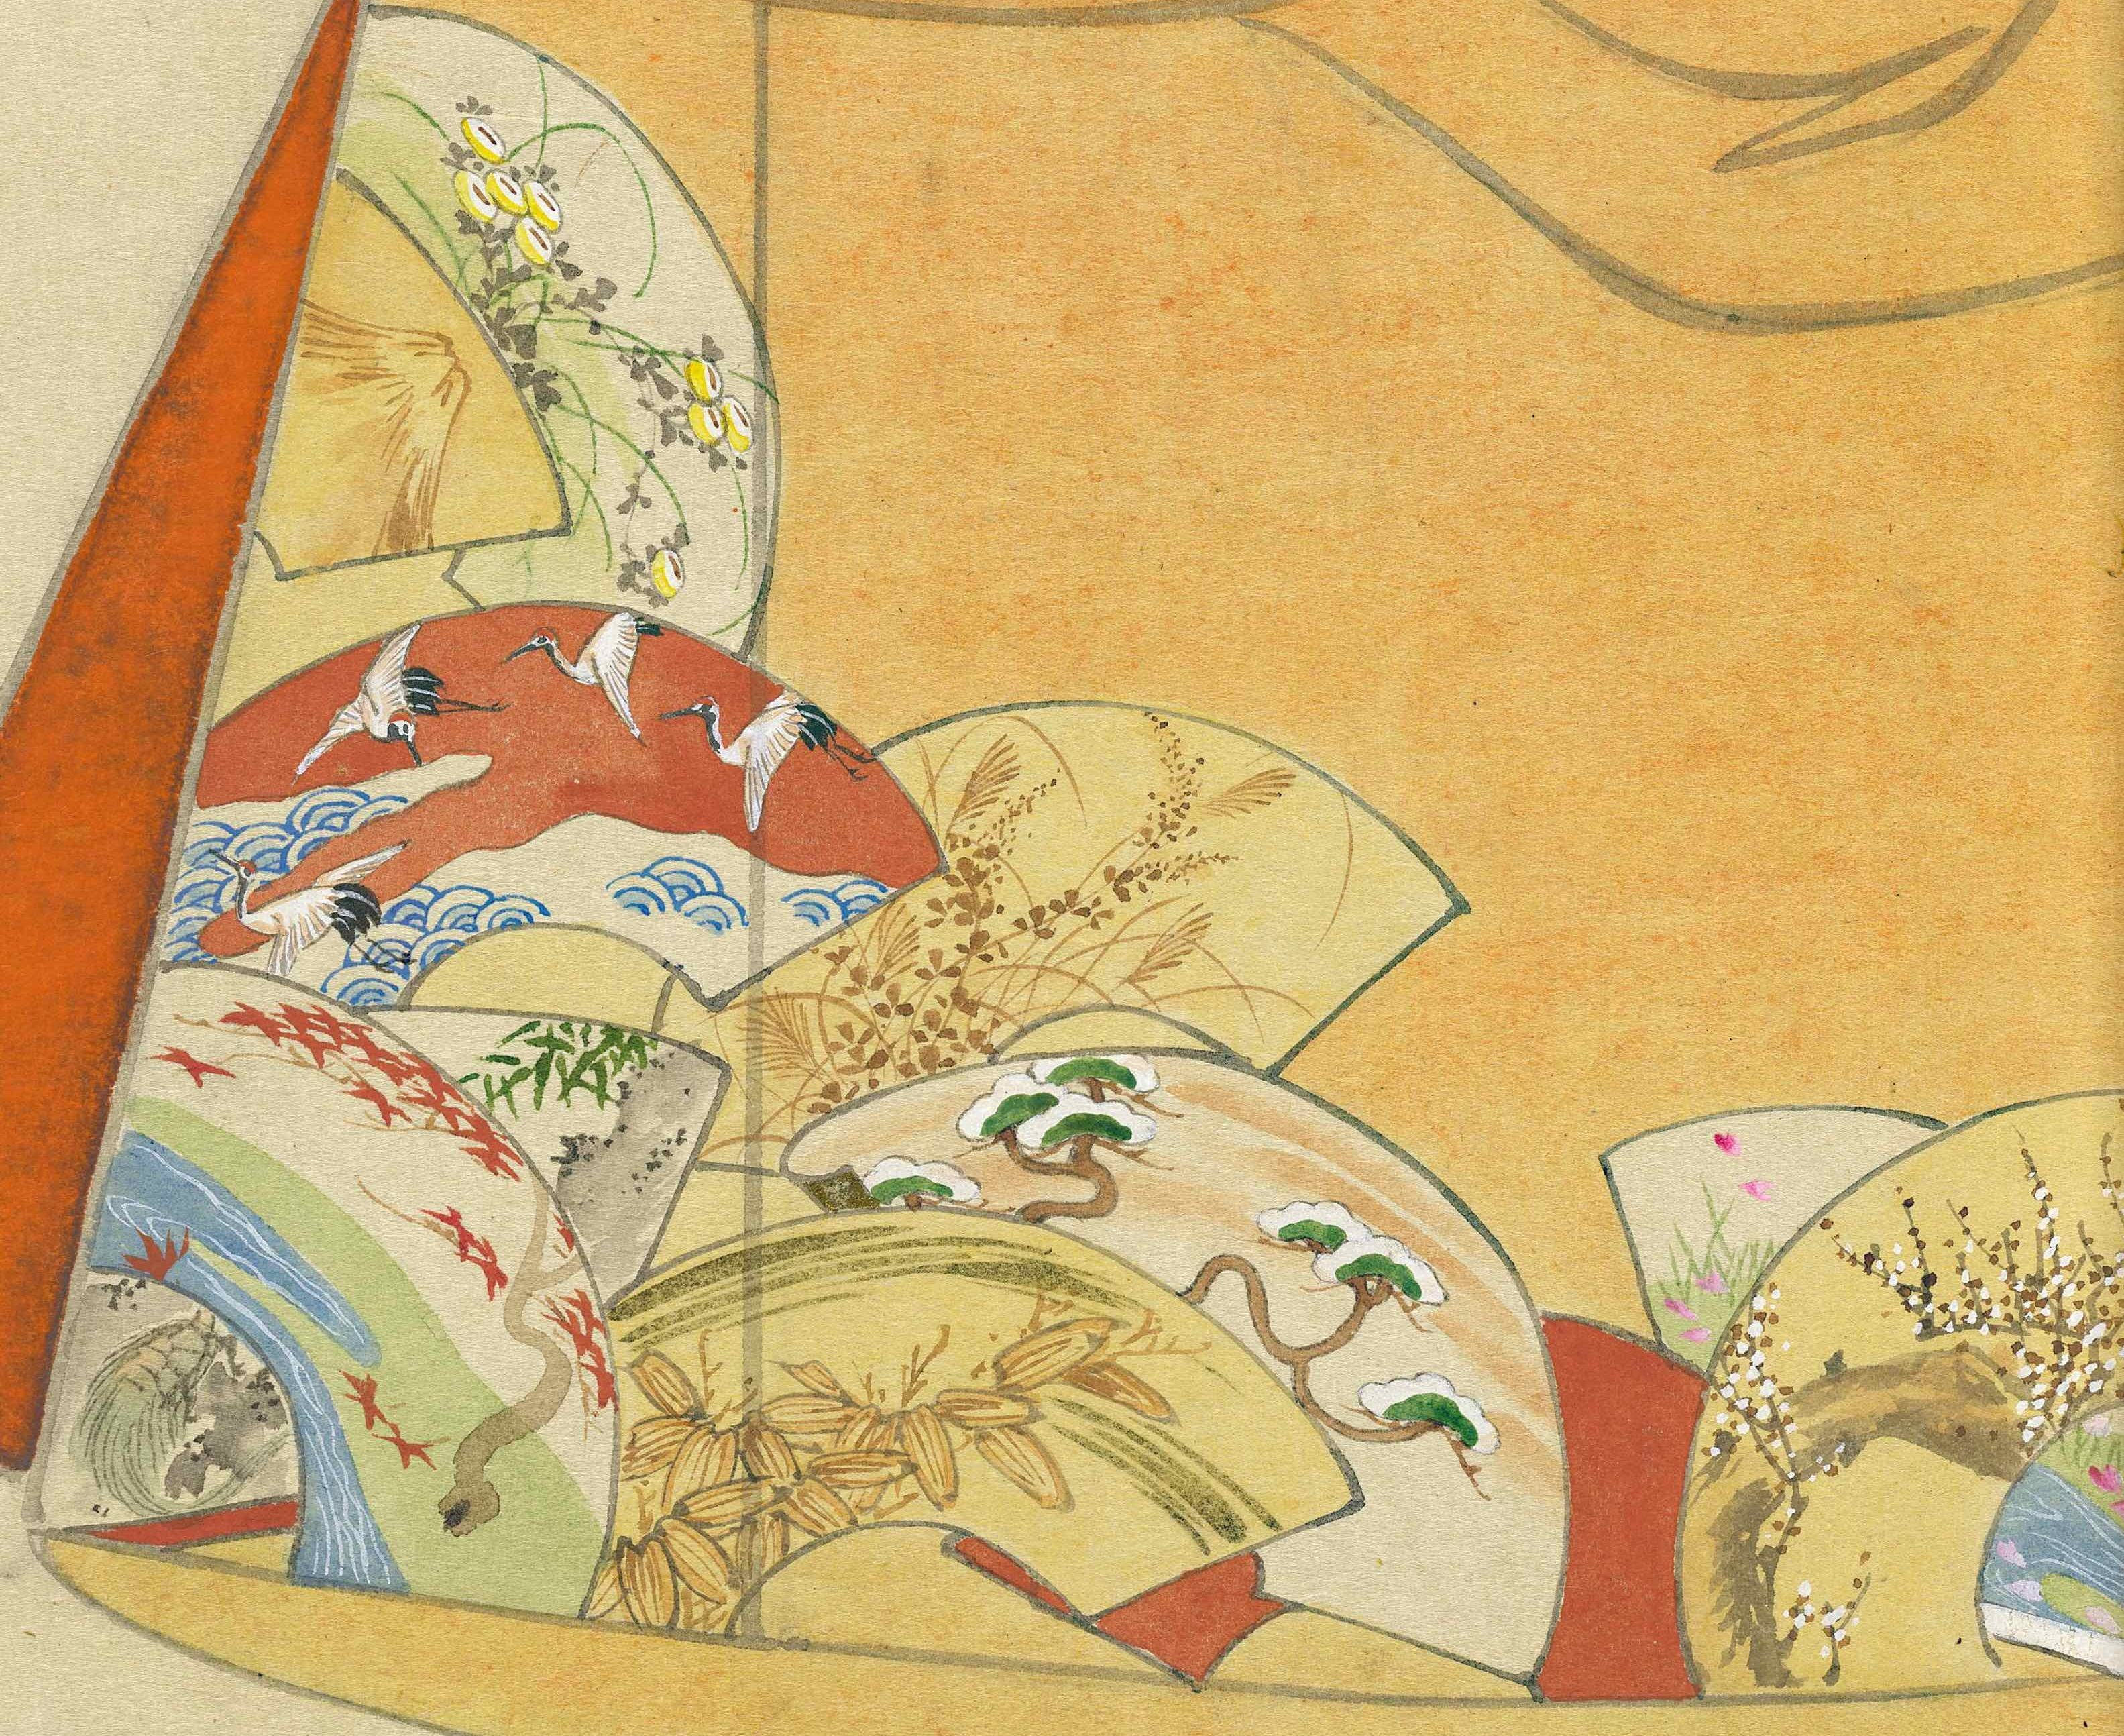 Detail of a kimono design print. The design depicts a tan kimono with a series of painted fans in the bottom corner.